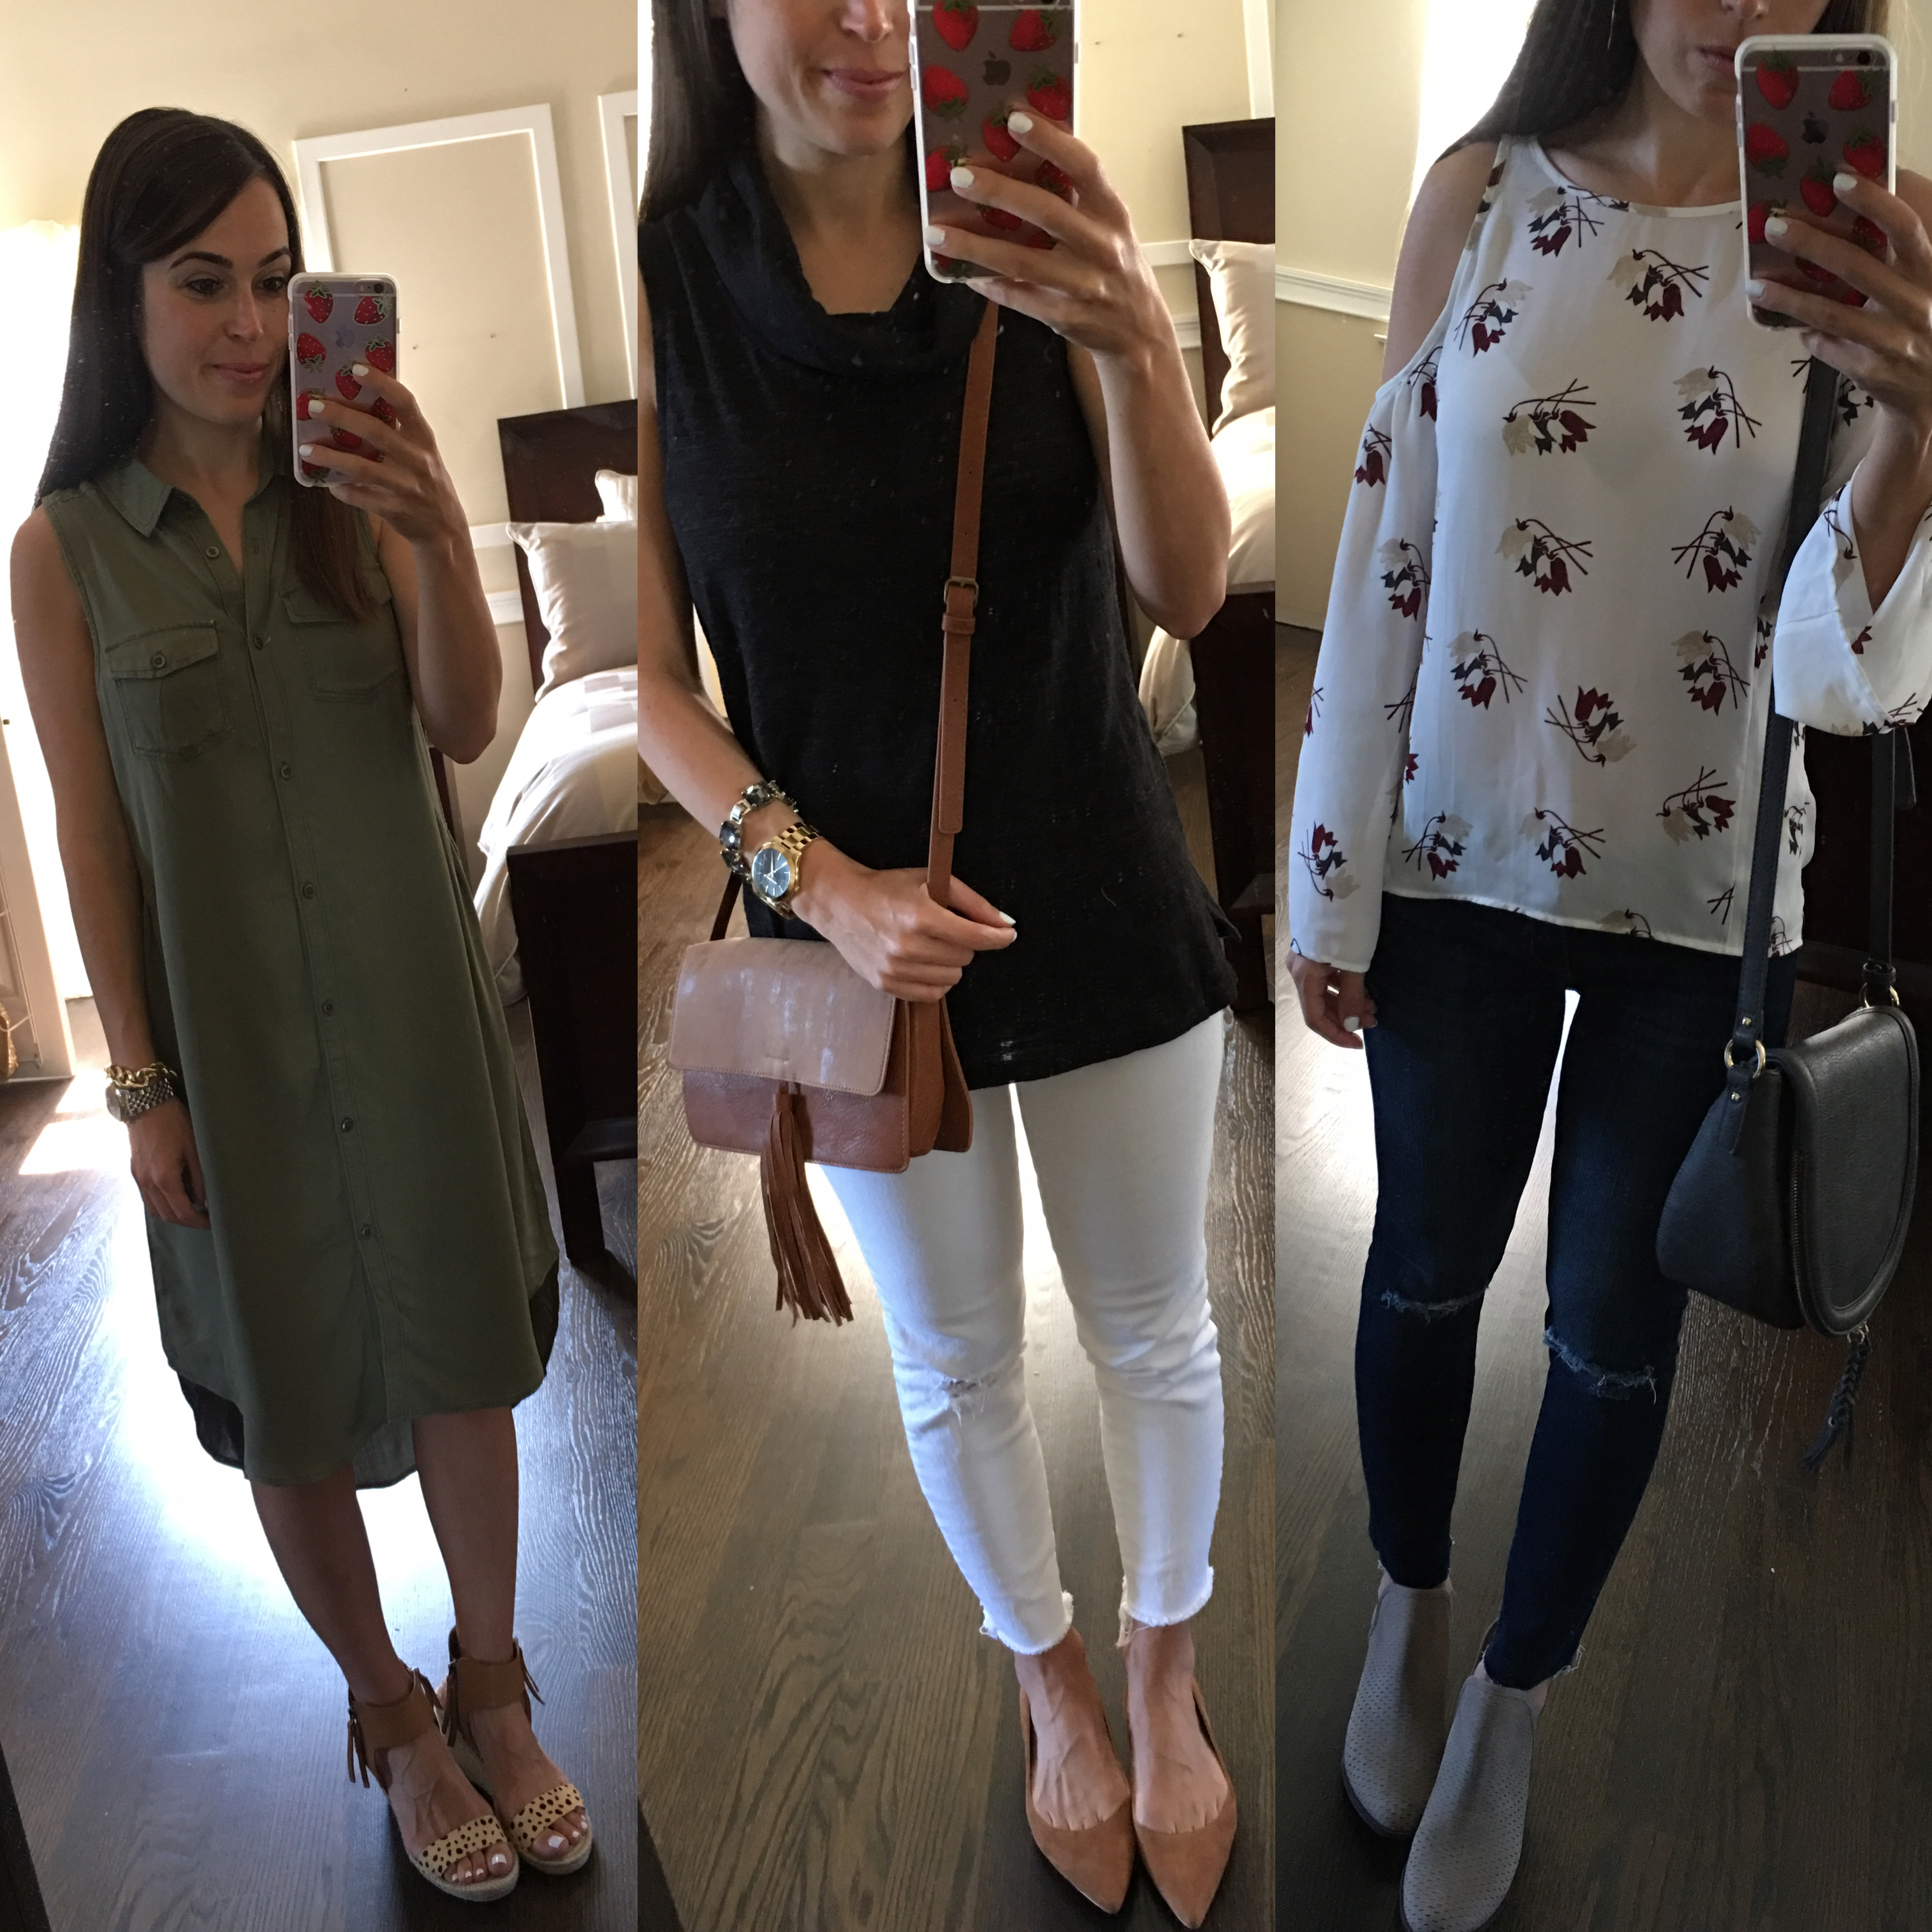 mrscasual nordstrom sale try ons and reviews #nsale nordstrom anniversary sale